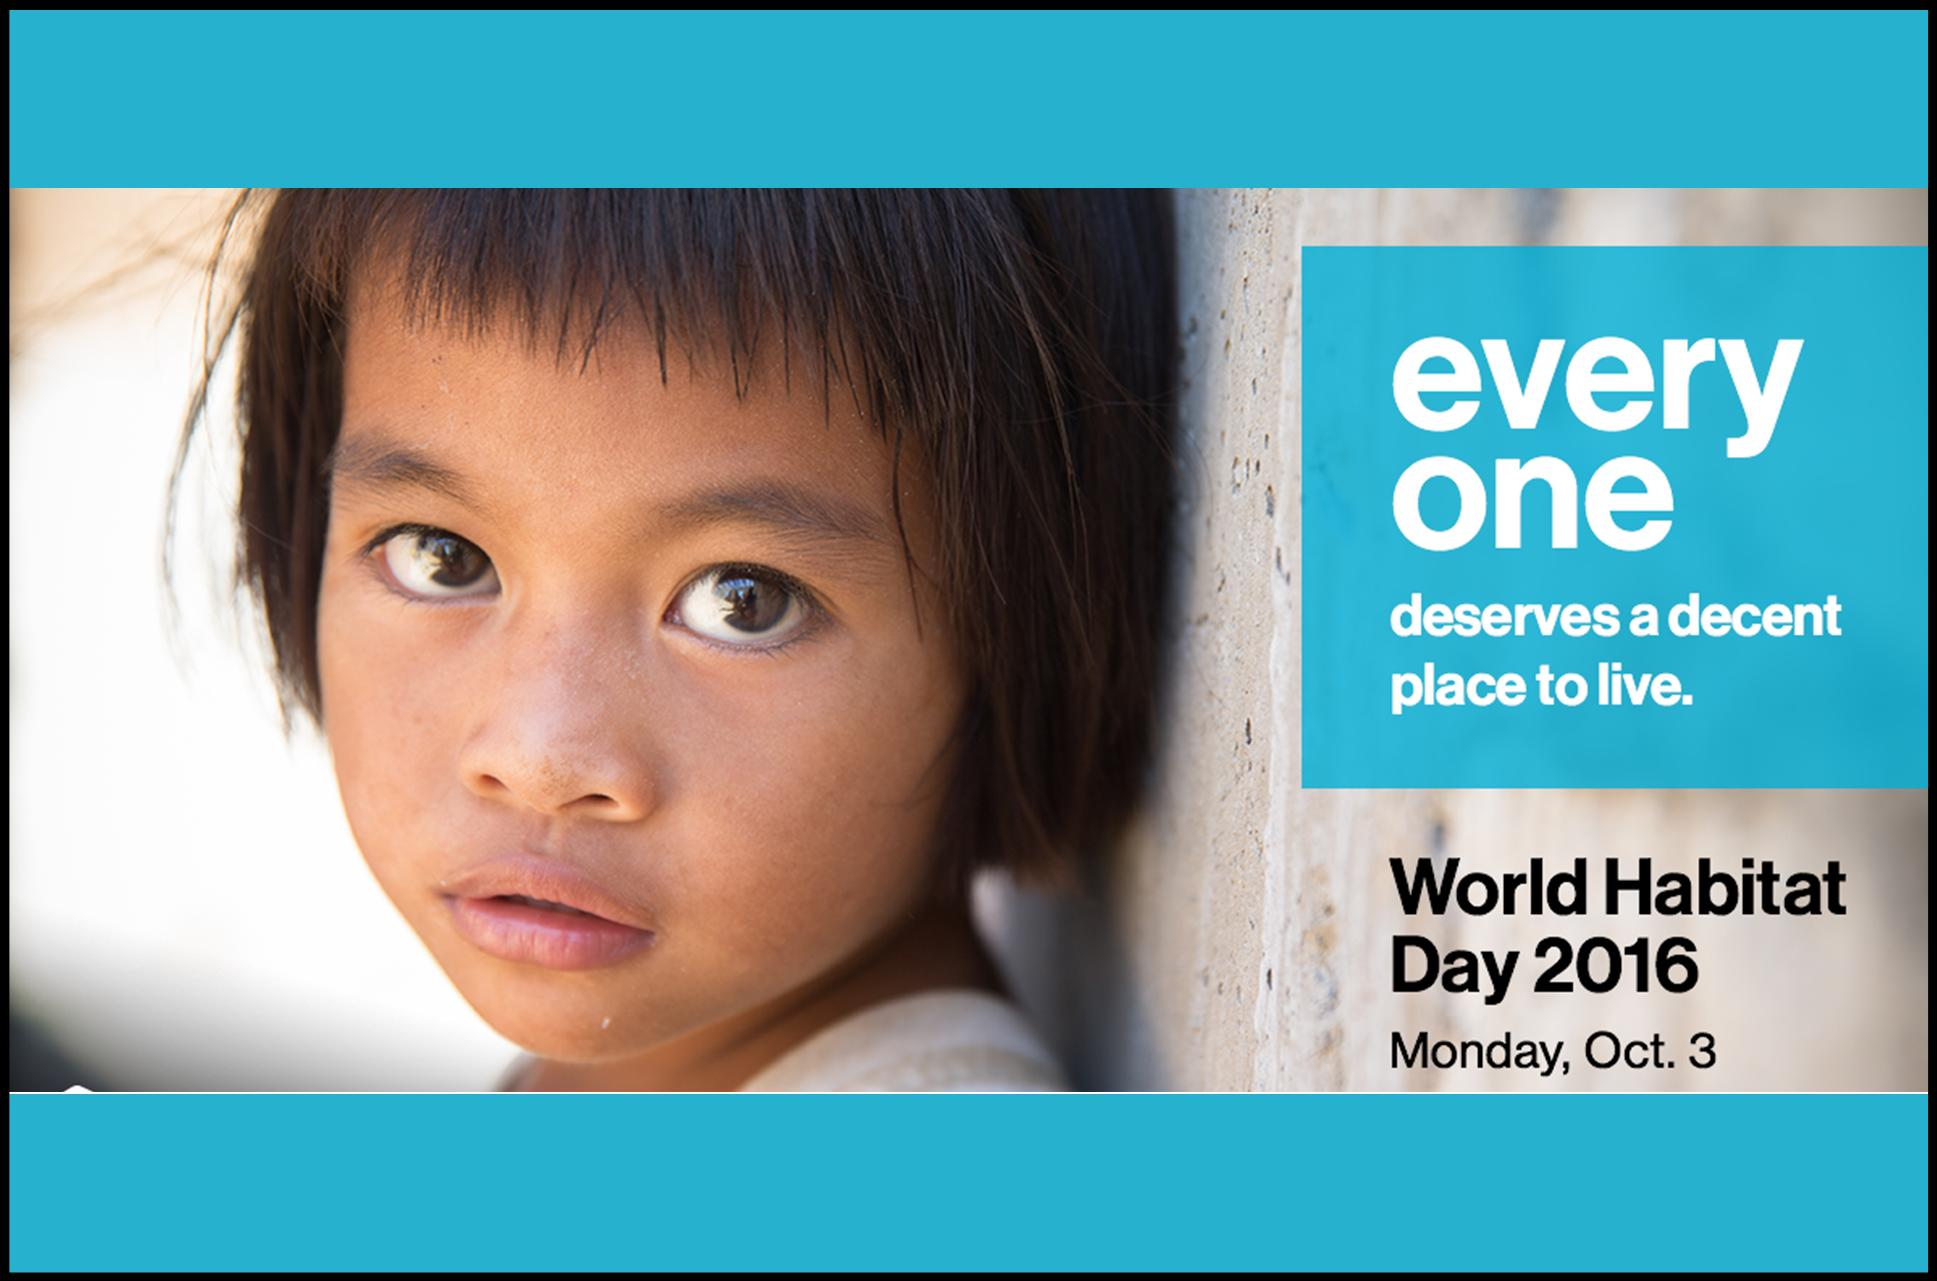 Make a donation in honor of World Habitat Day